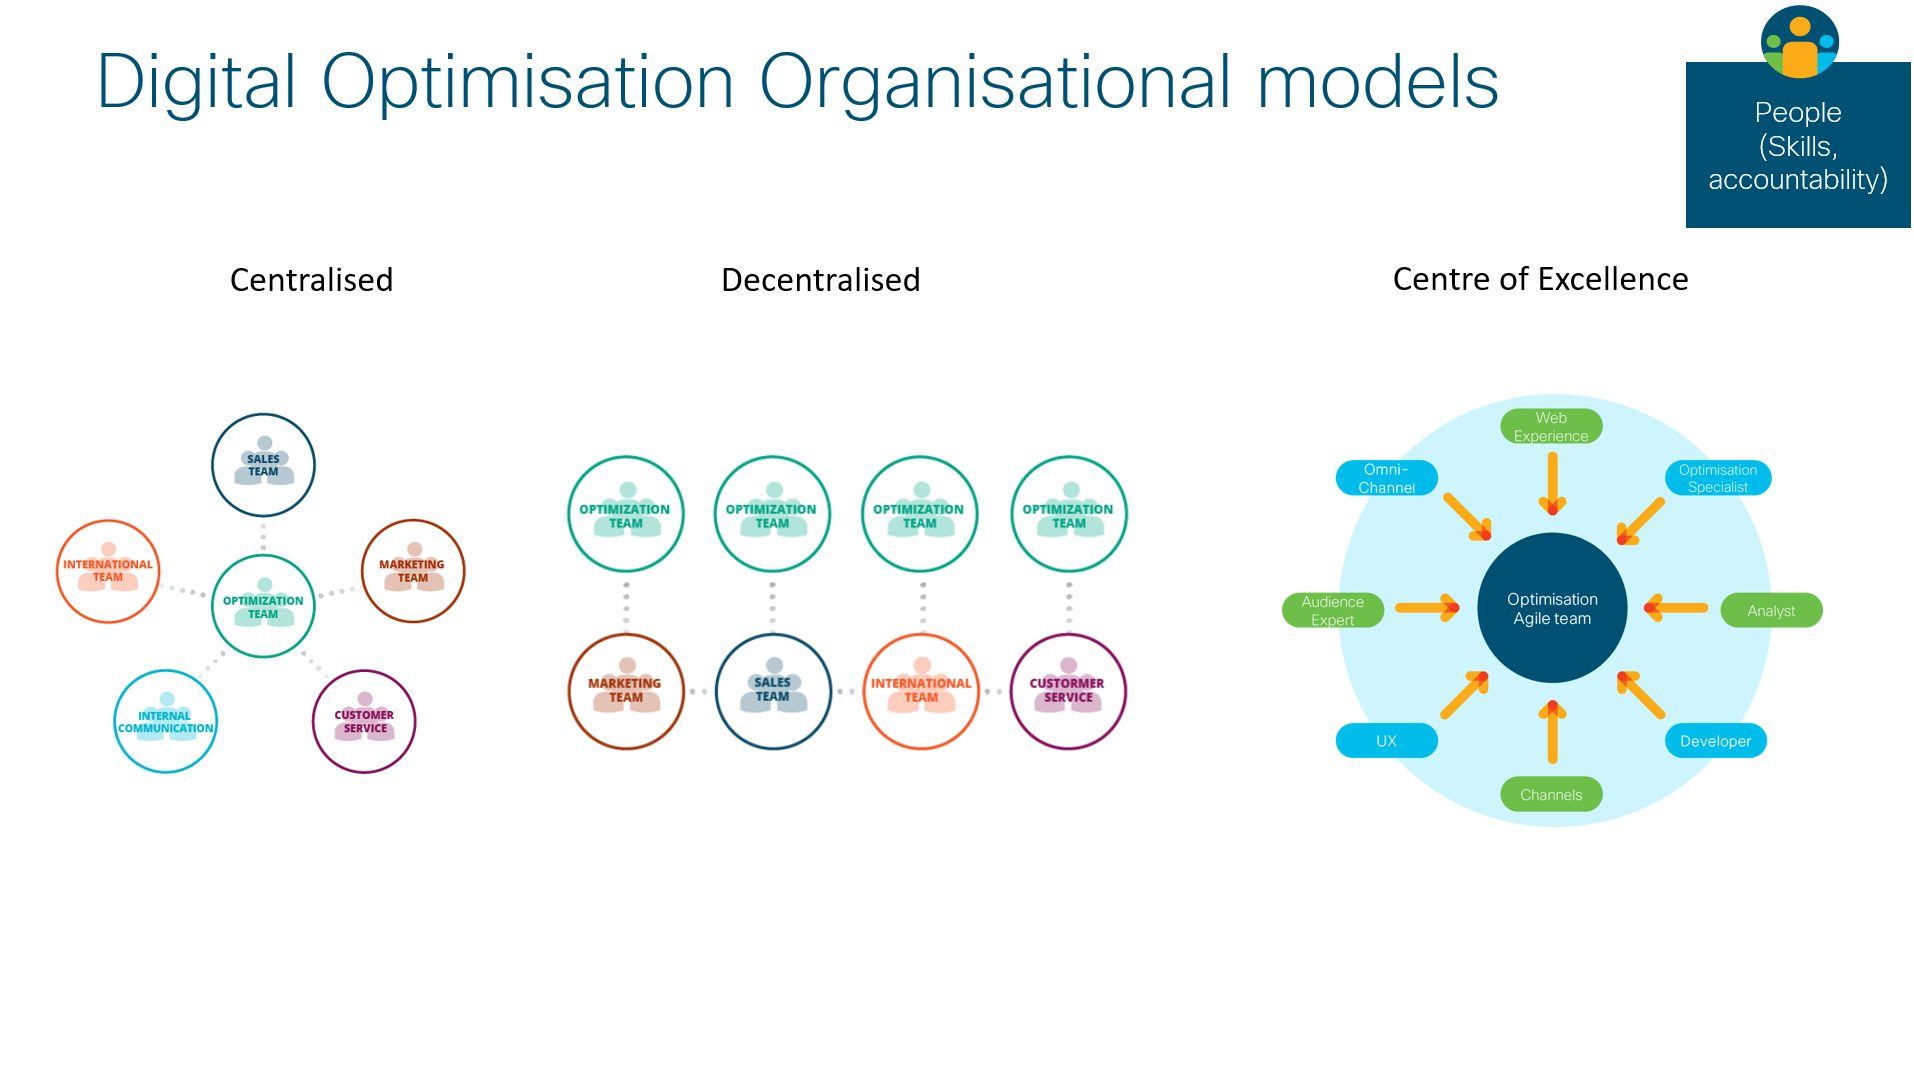 Cisco organizational models for optimization.